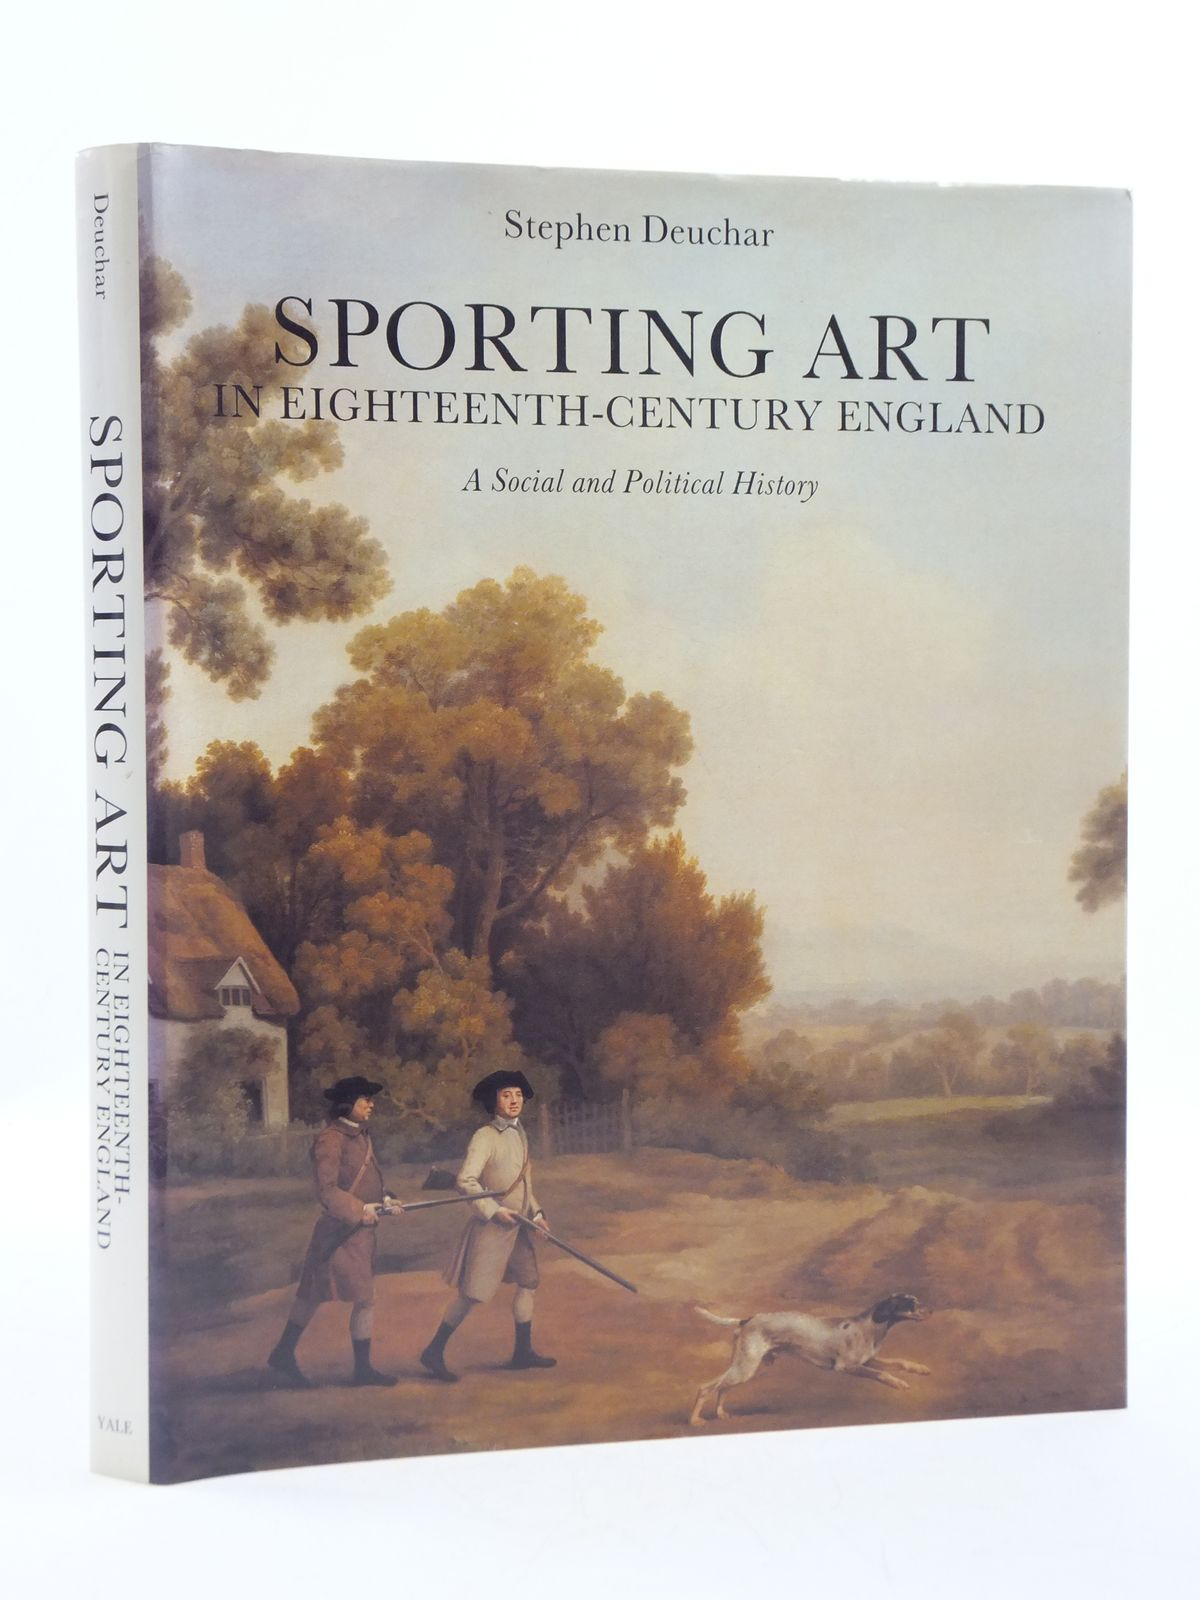 Photo of SPORTING ART IN EIGHTEENTH-CENTURY ENGLAND A SOCIAL AND POLITICAL HISTORY- Stock Number: 1604857